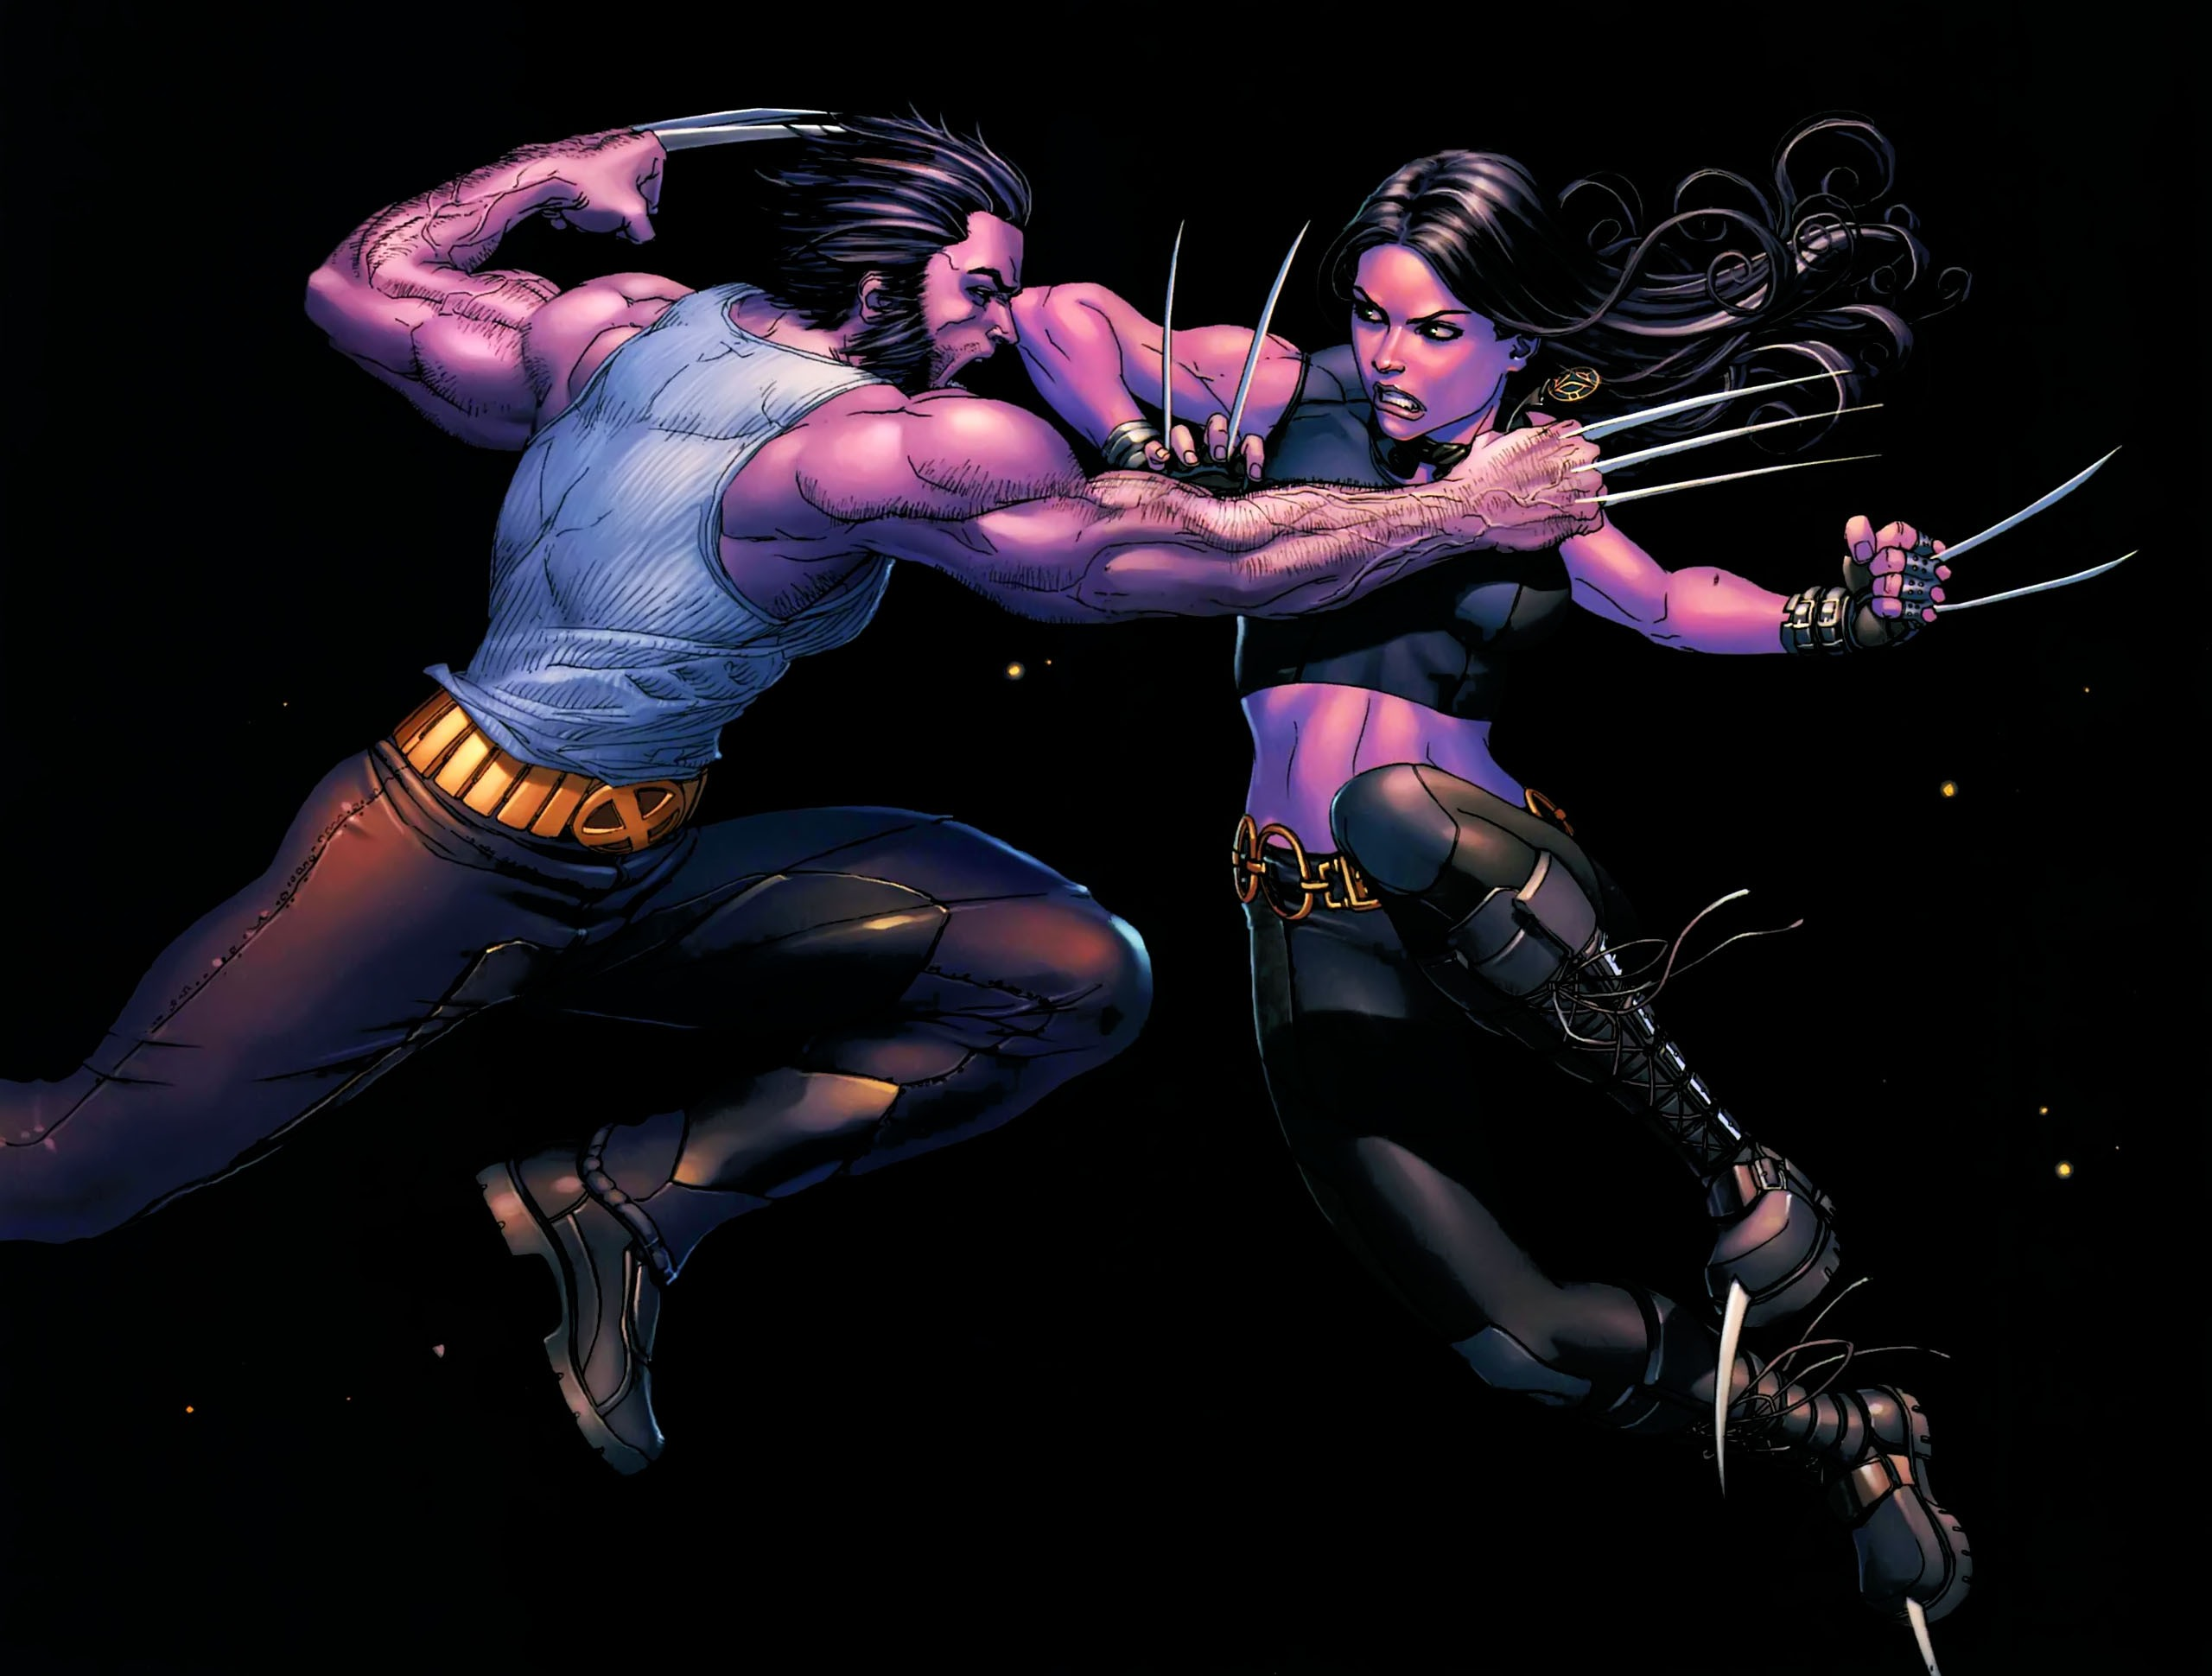 Wolverine and X 23 Wallpaper 2560x1940